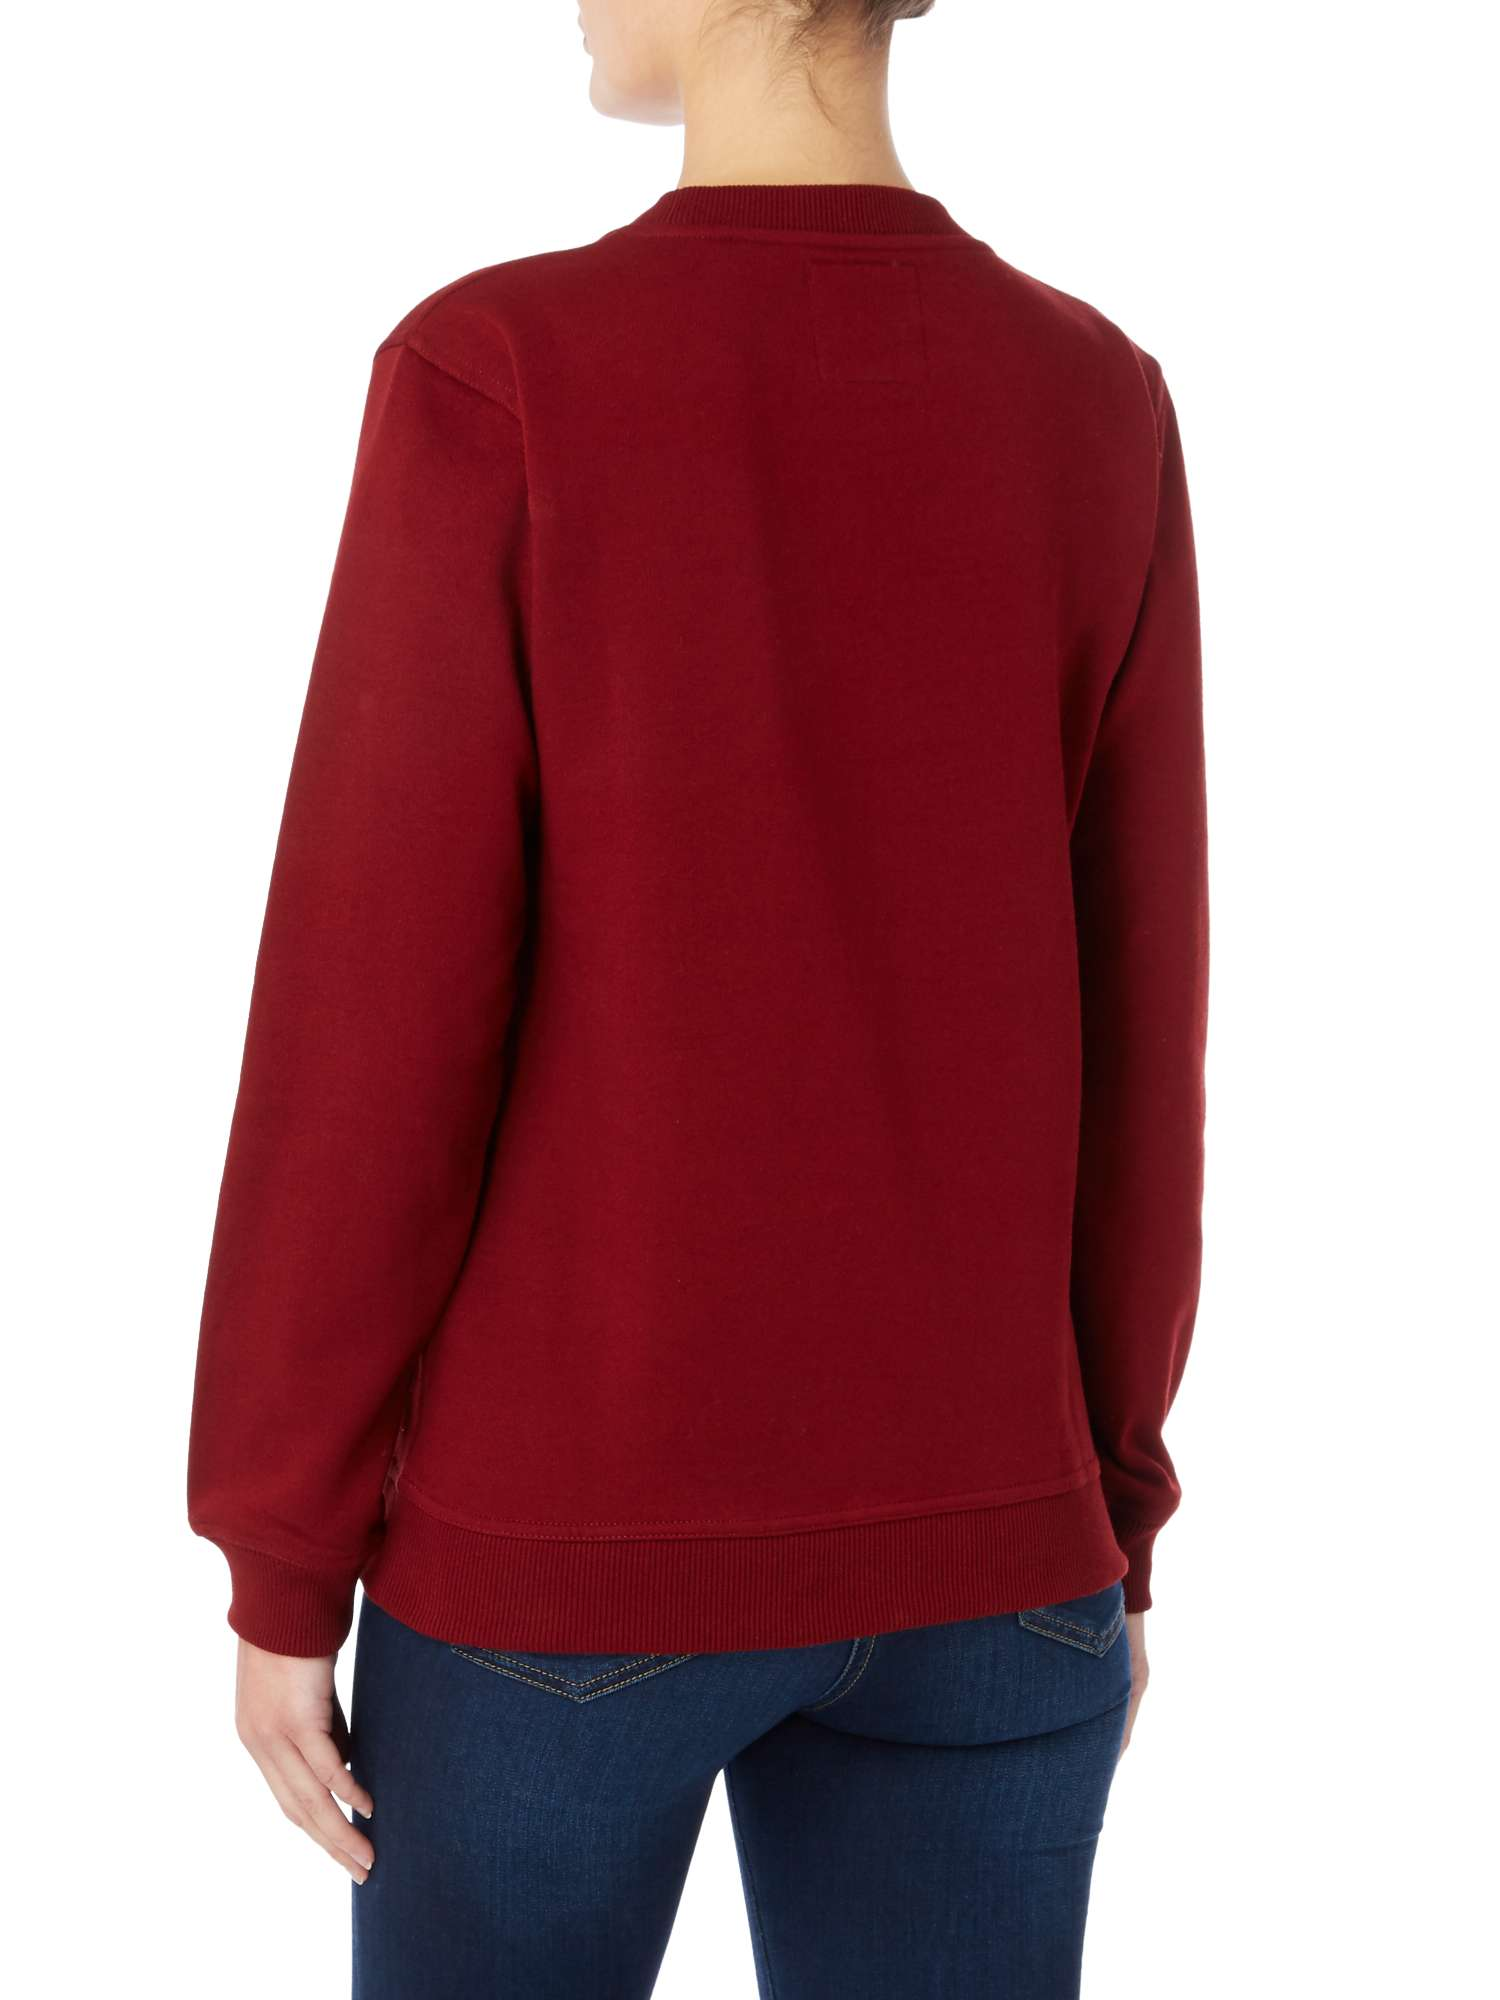 Running Sweater Wine Of Blake Seven Out Pwq551